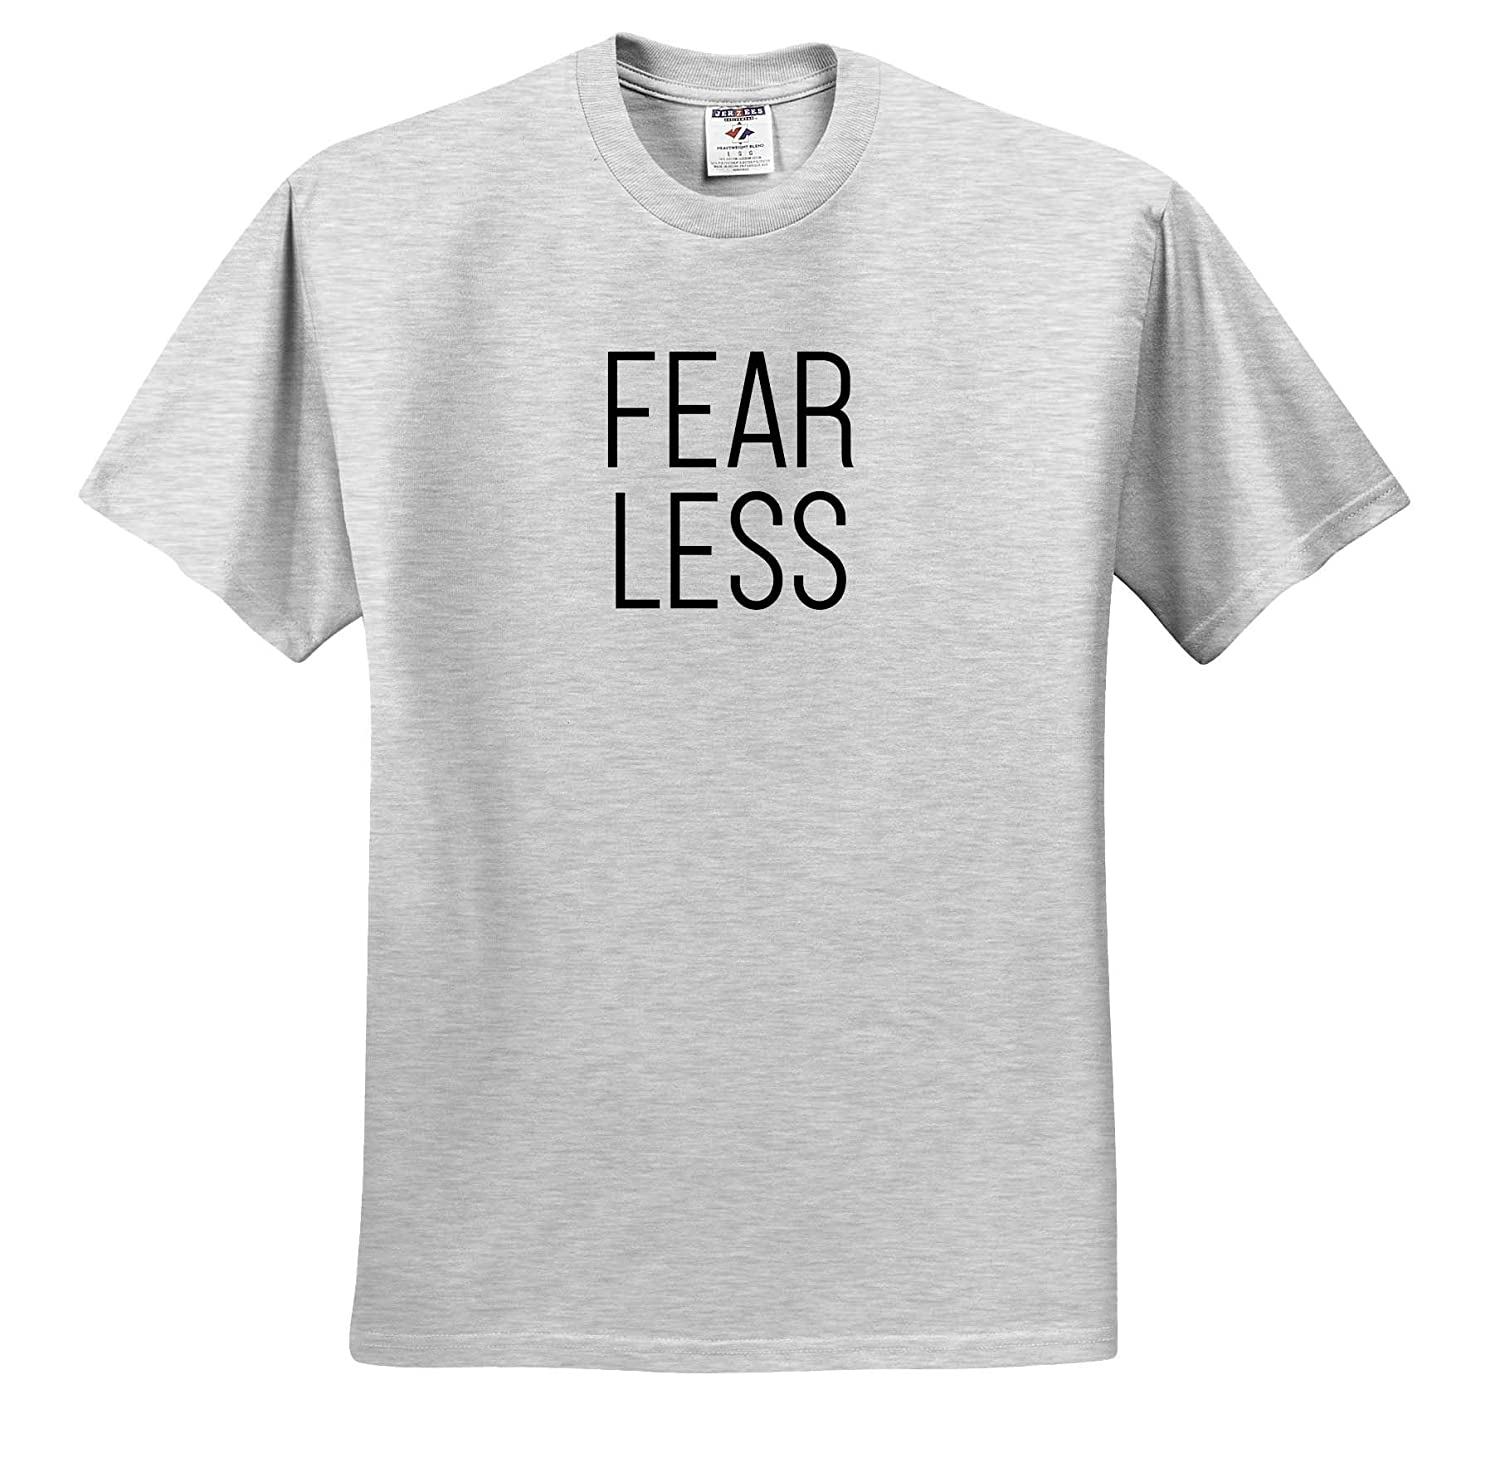 Fearless 3dRose Tory Anne Collections Quotes T-Shirts